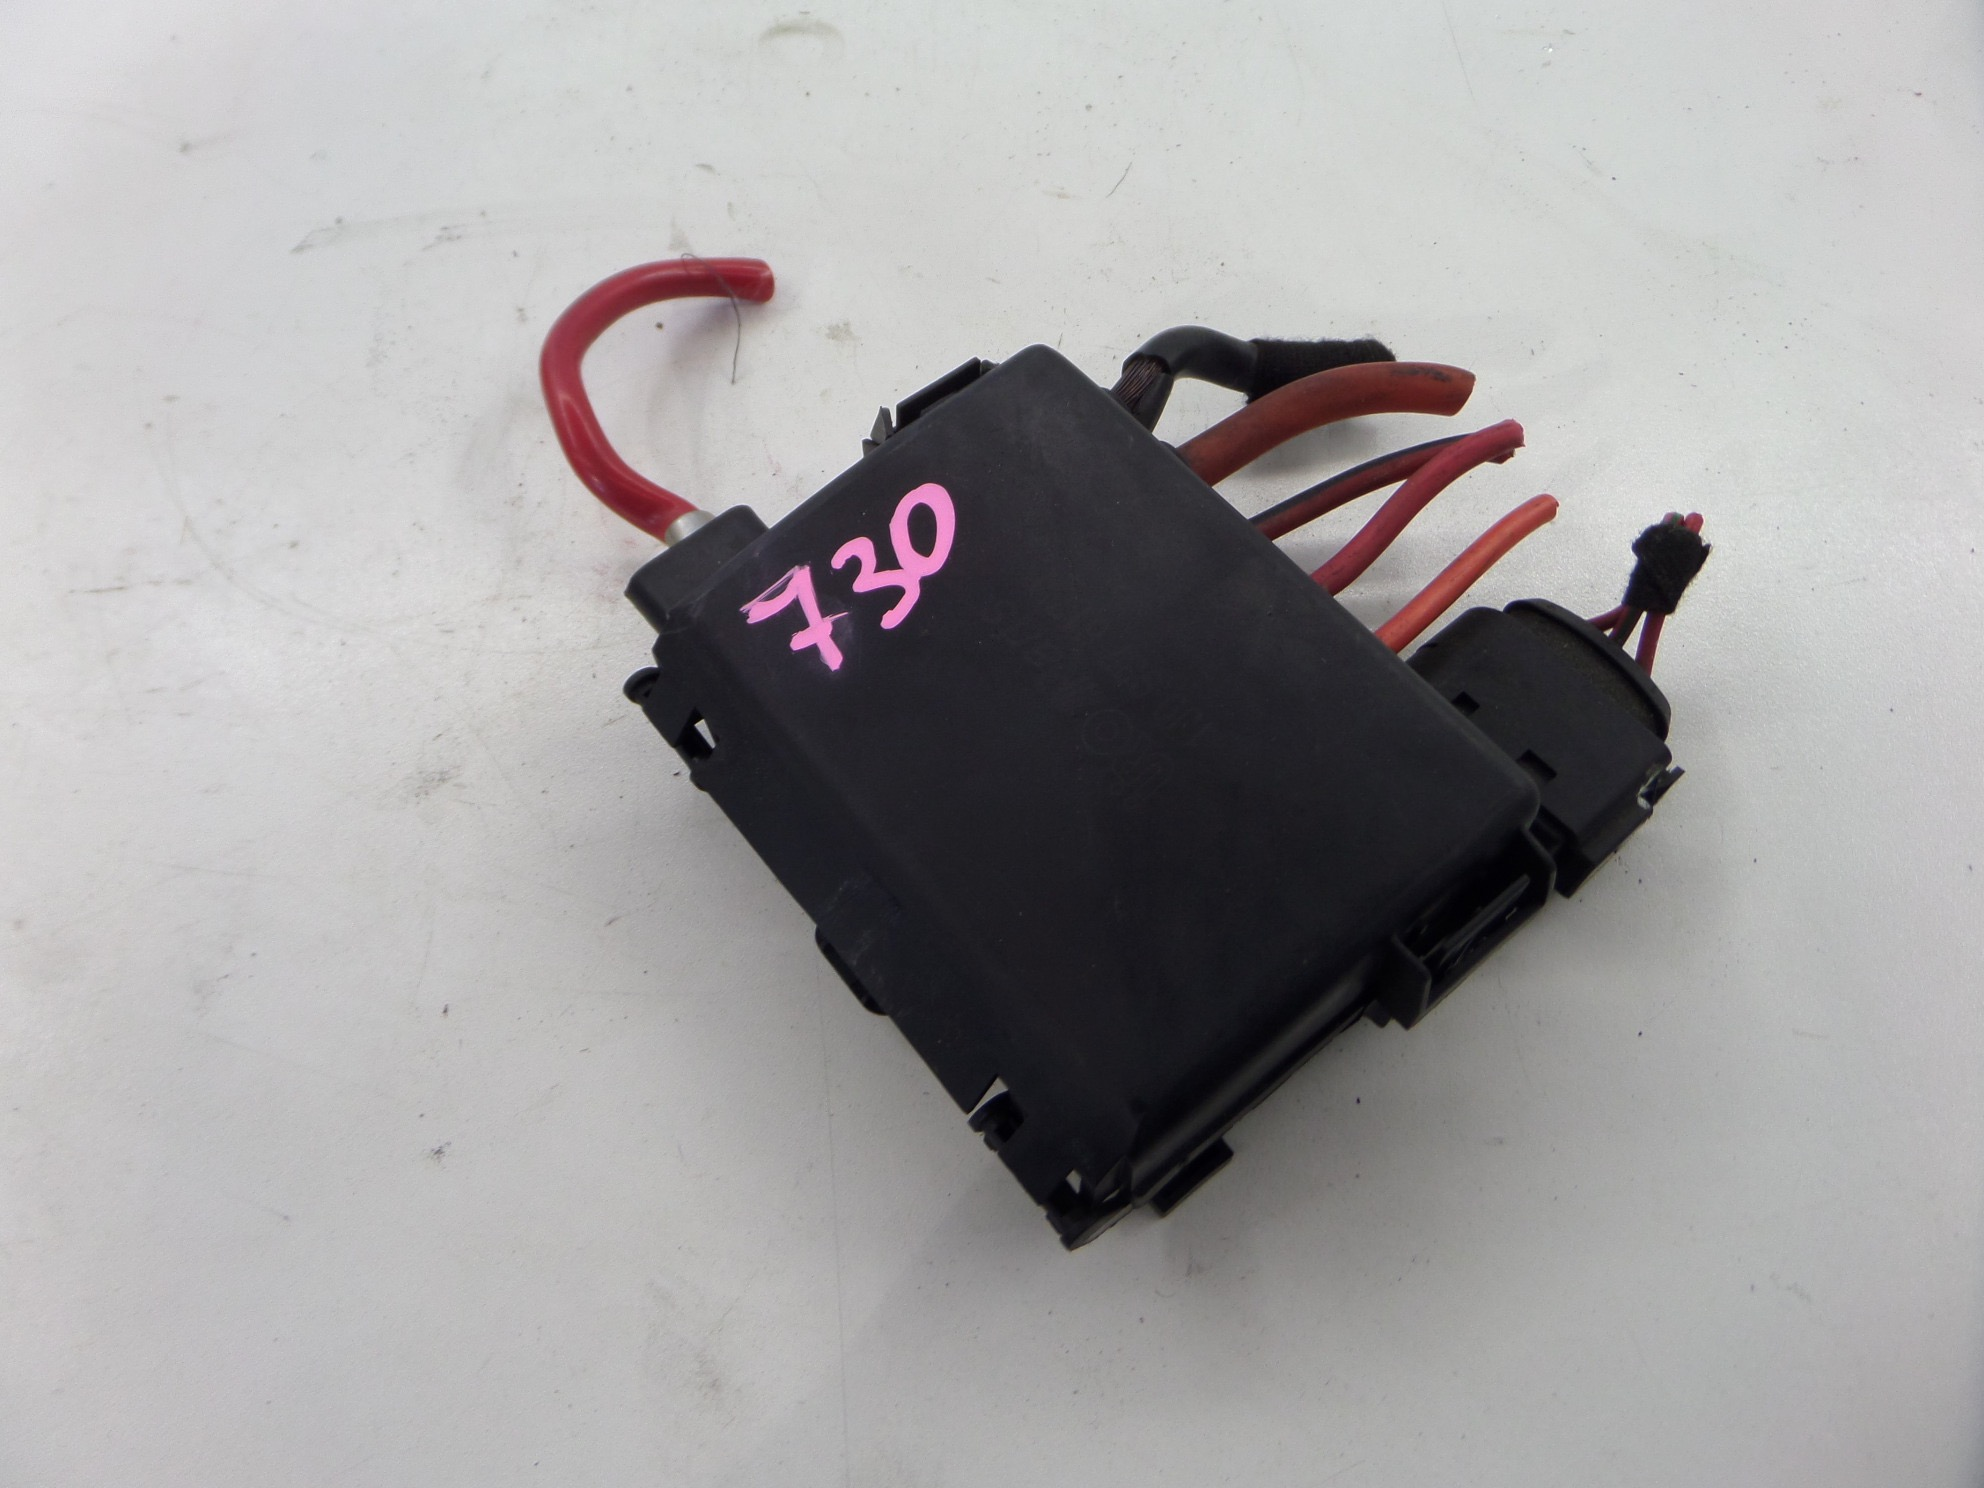 VW Jetta Battery Top Fuse Box MK4 00-05 OEM 1J0 937 773 | eBayeBay